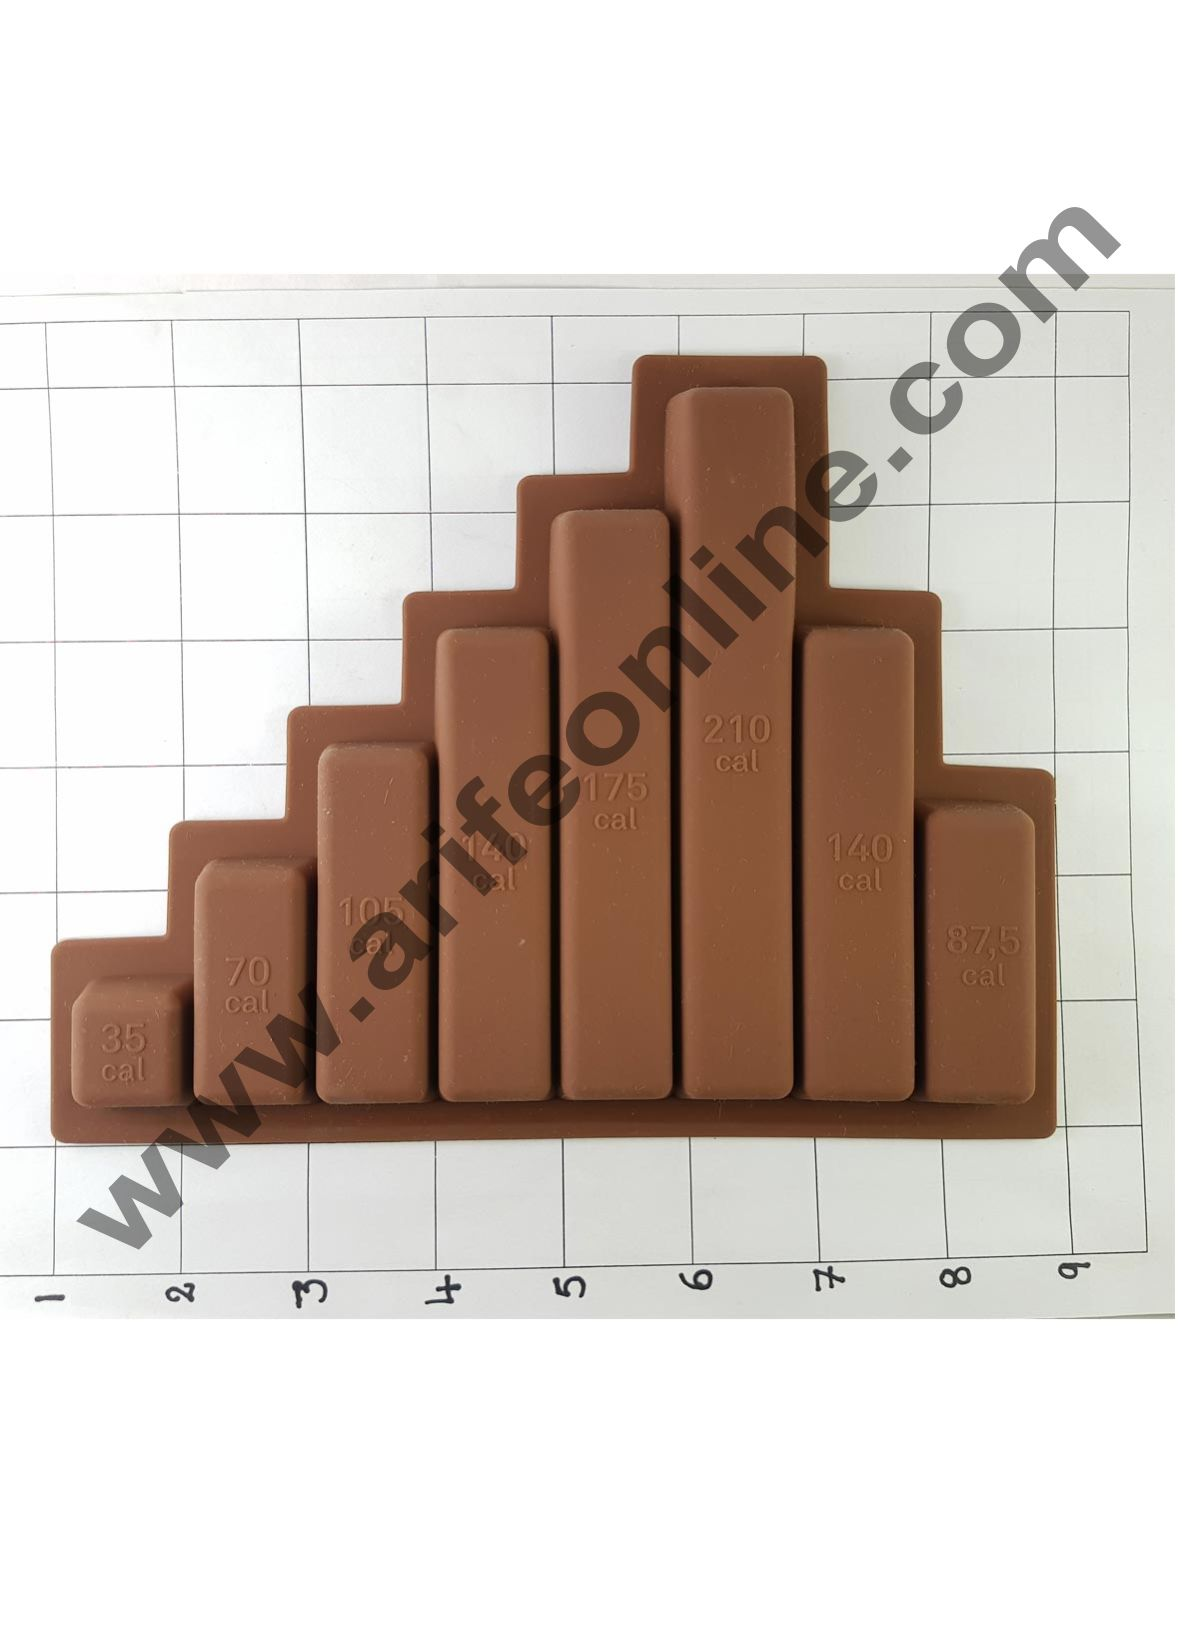 Cake Decor Silicon 8 Cavity Cadbury Slab Design Brown Chocolate Mould, Ice Mould, Chocolate Decorating Mould